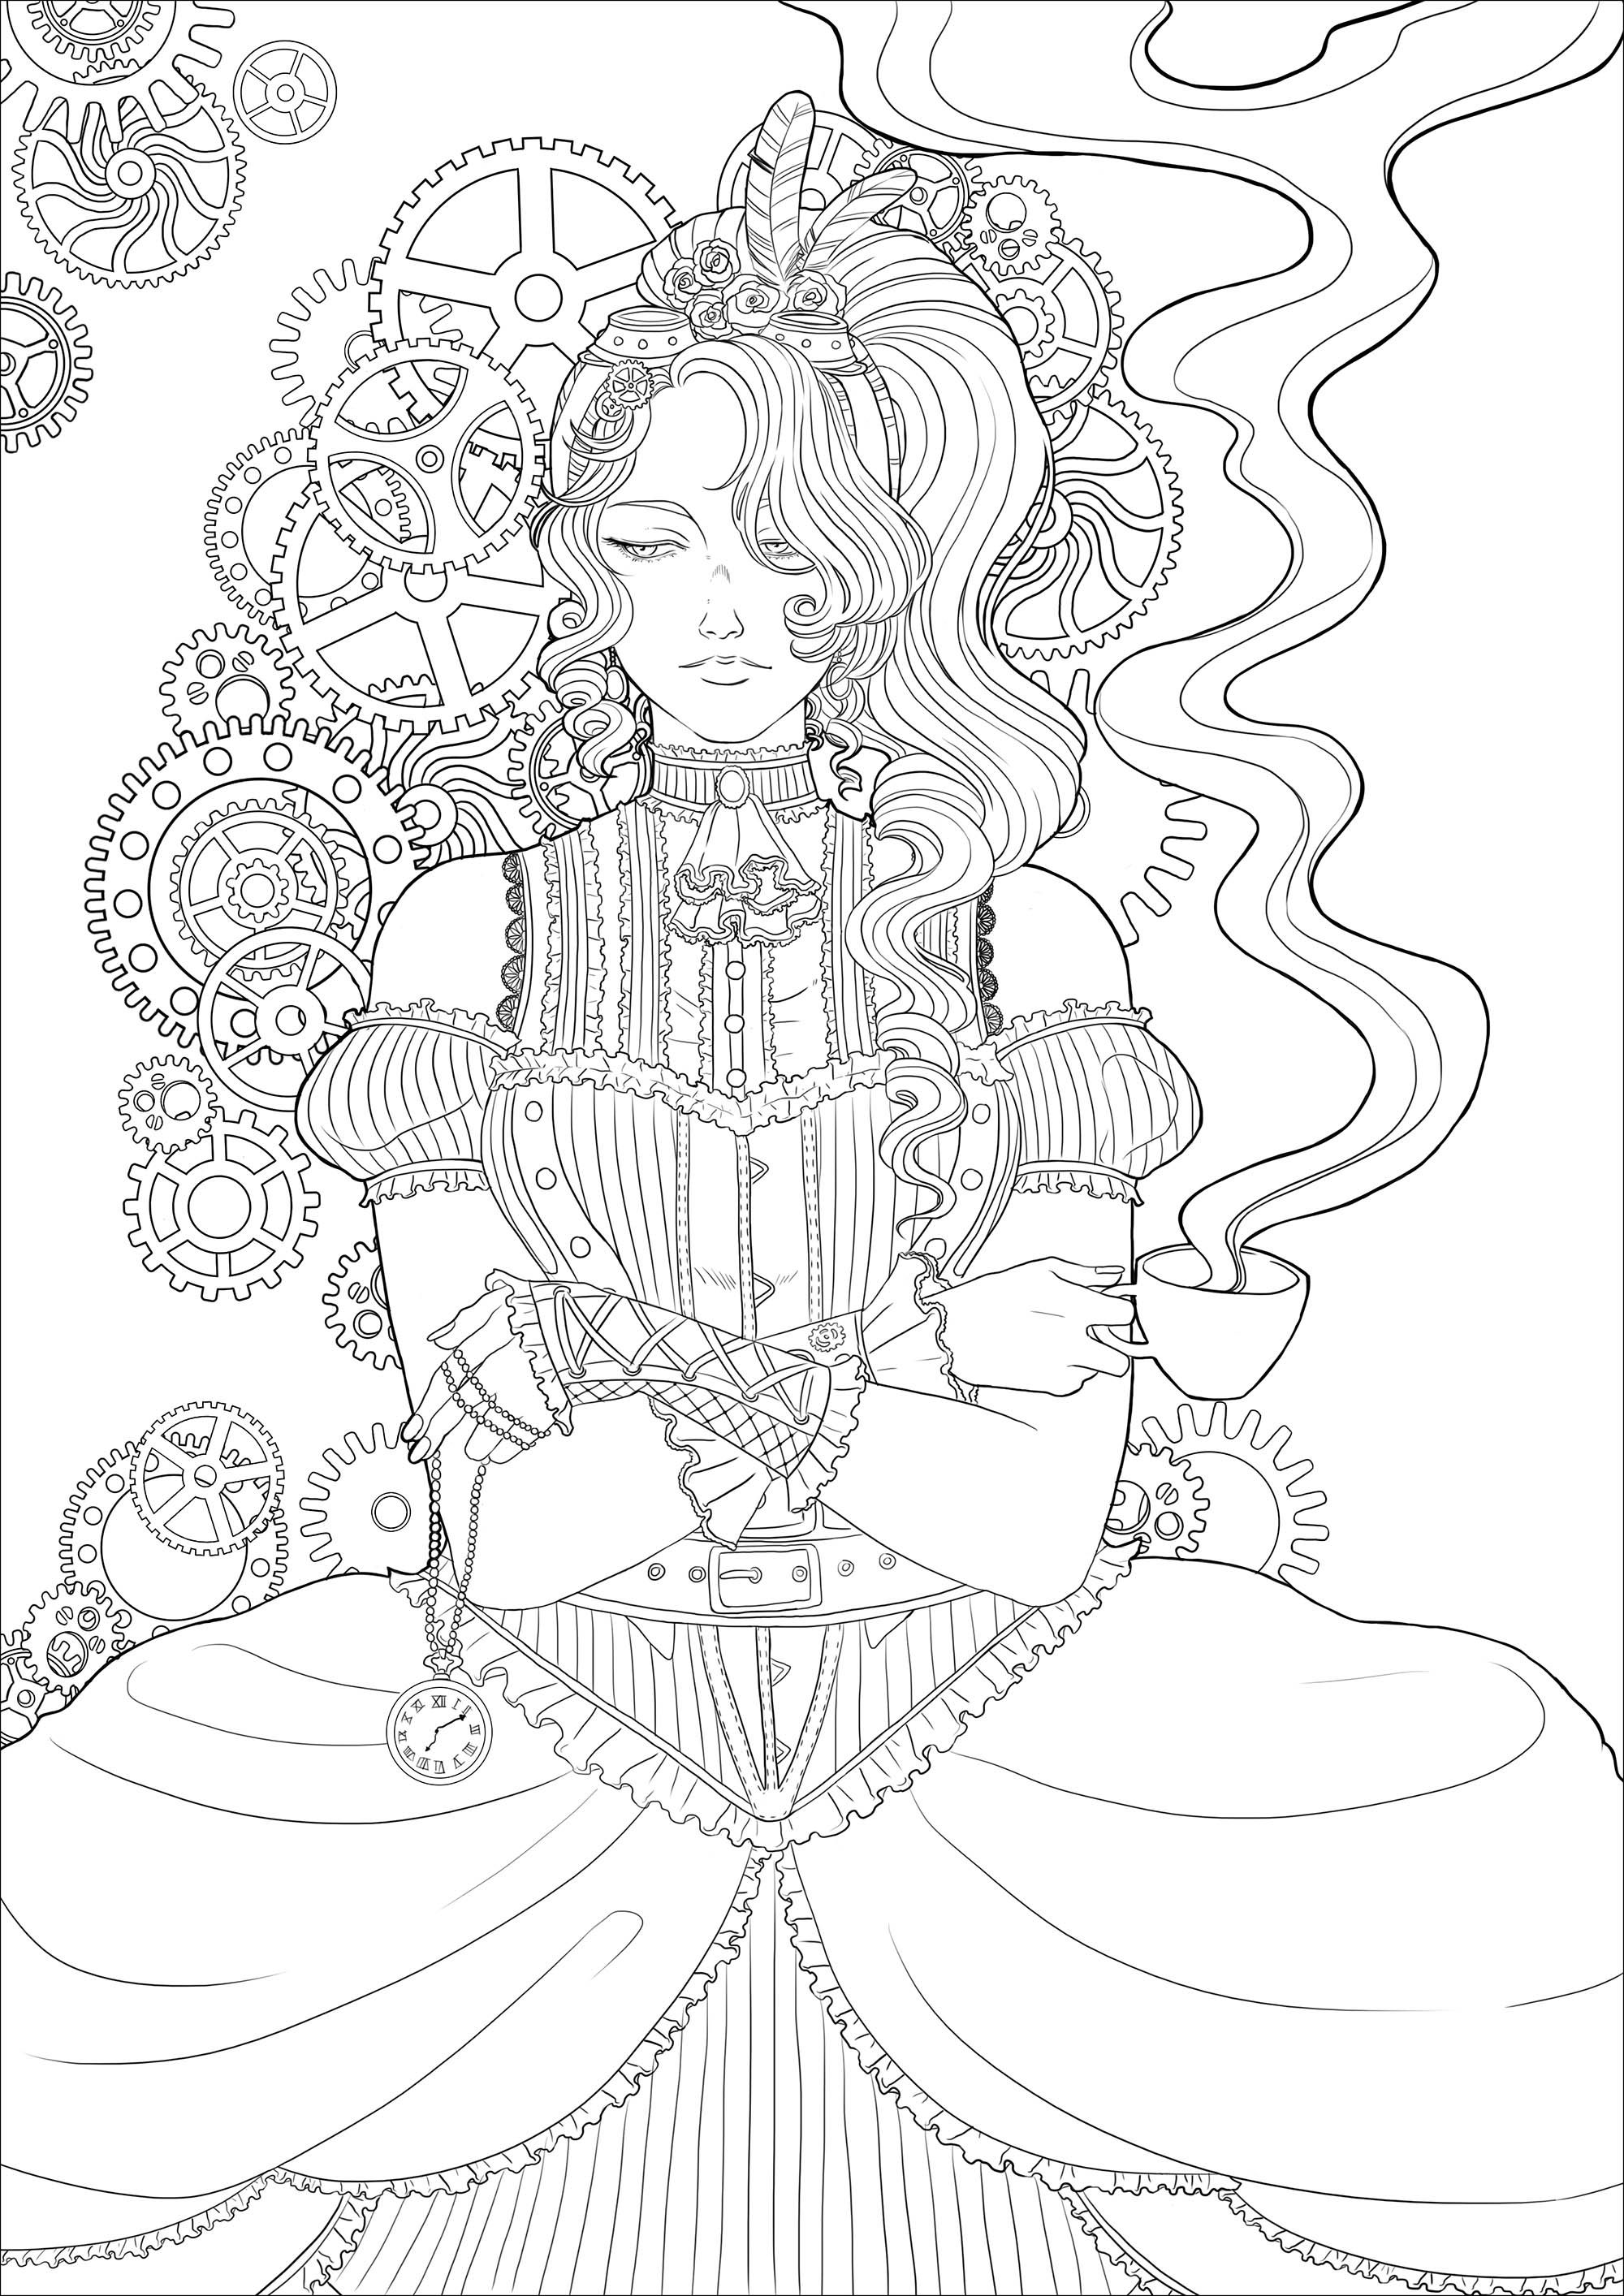 Coloring Page Of A Melancholy Young Woman With A Cup Of Tea All In A Victorian Environment And Mechanis Steampunk Coloring Fairy Coloring Pages Coloring Books